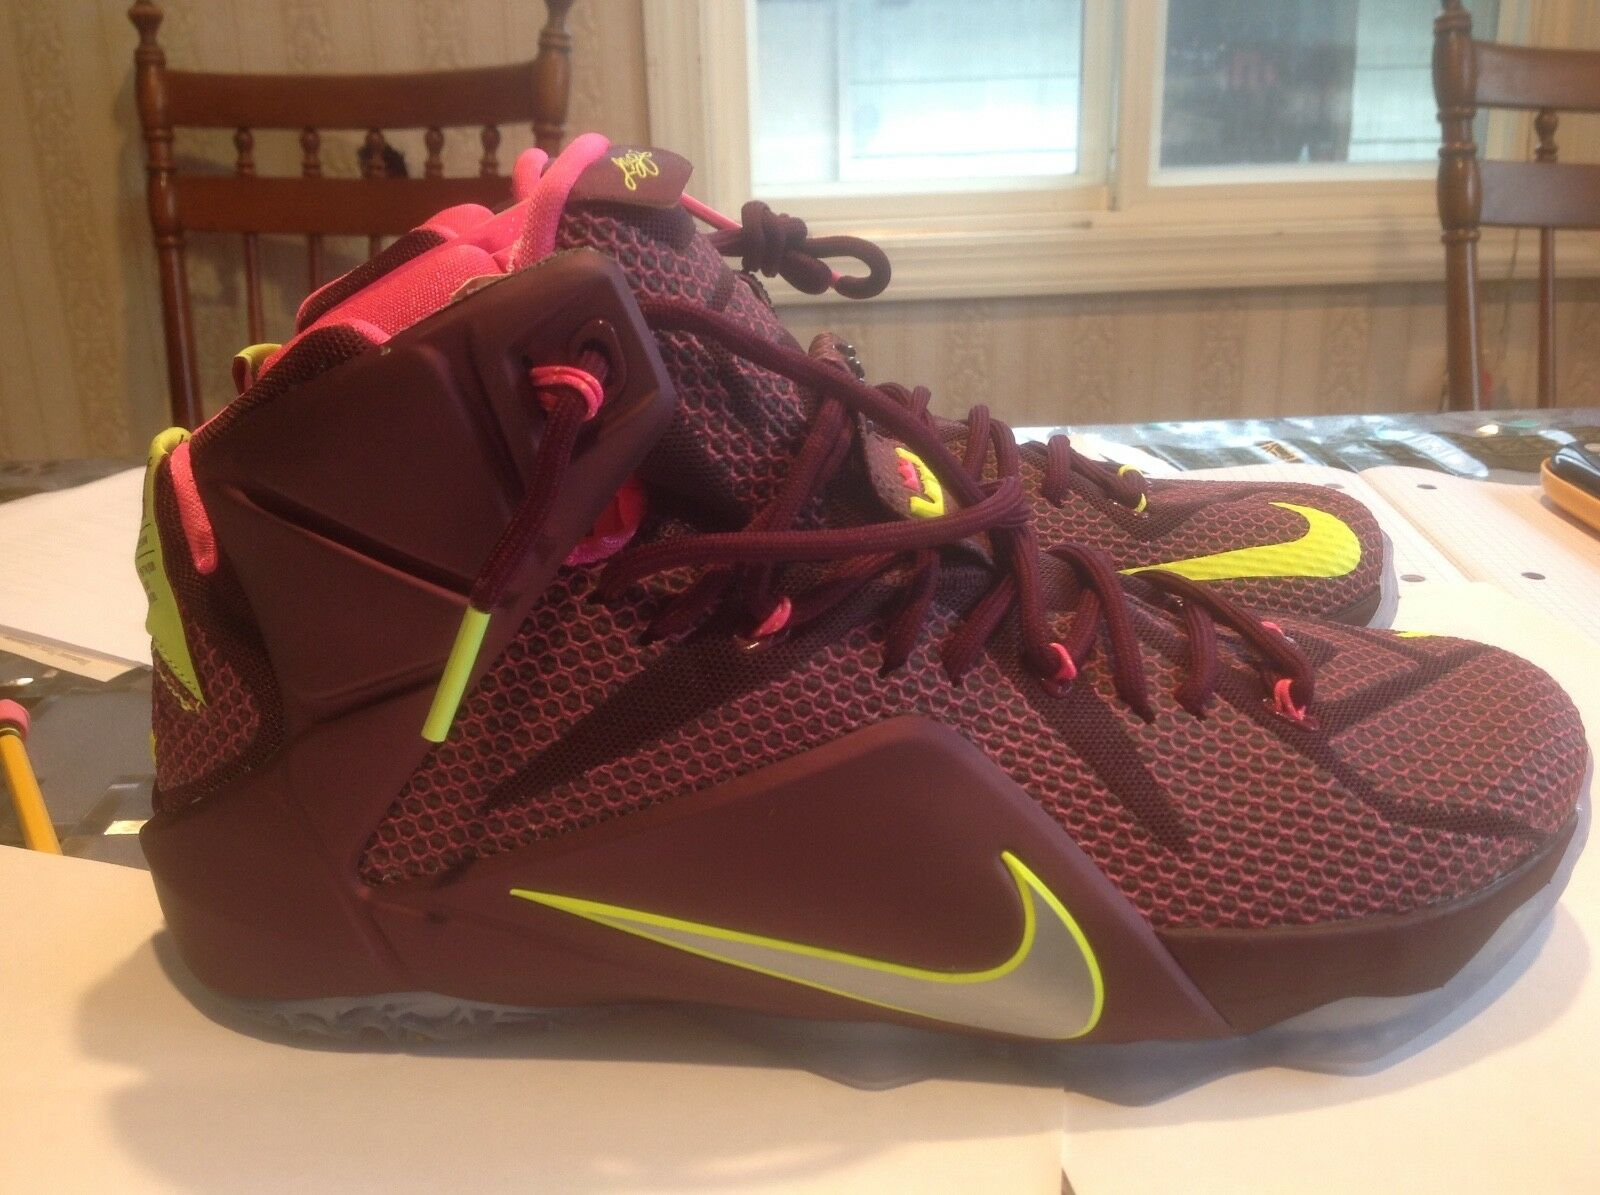 NEW Nike Lebron Collection Basketball men's 10.5 Shoes Merlot/Silver 684593-607